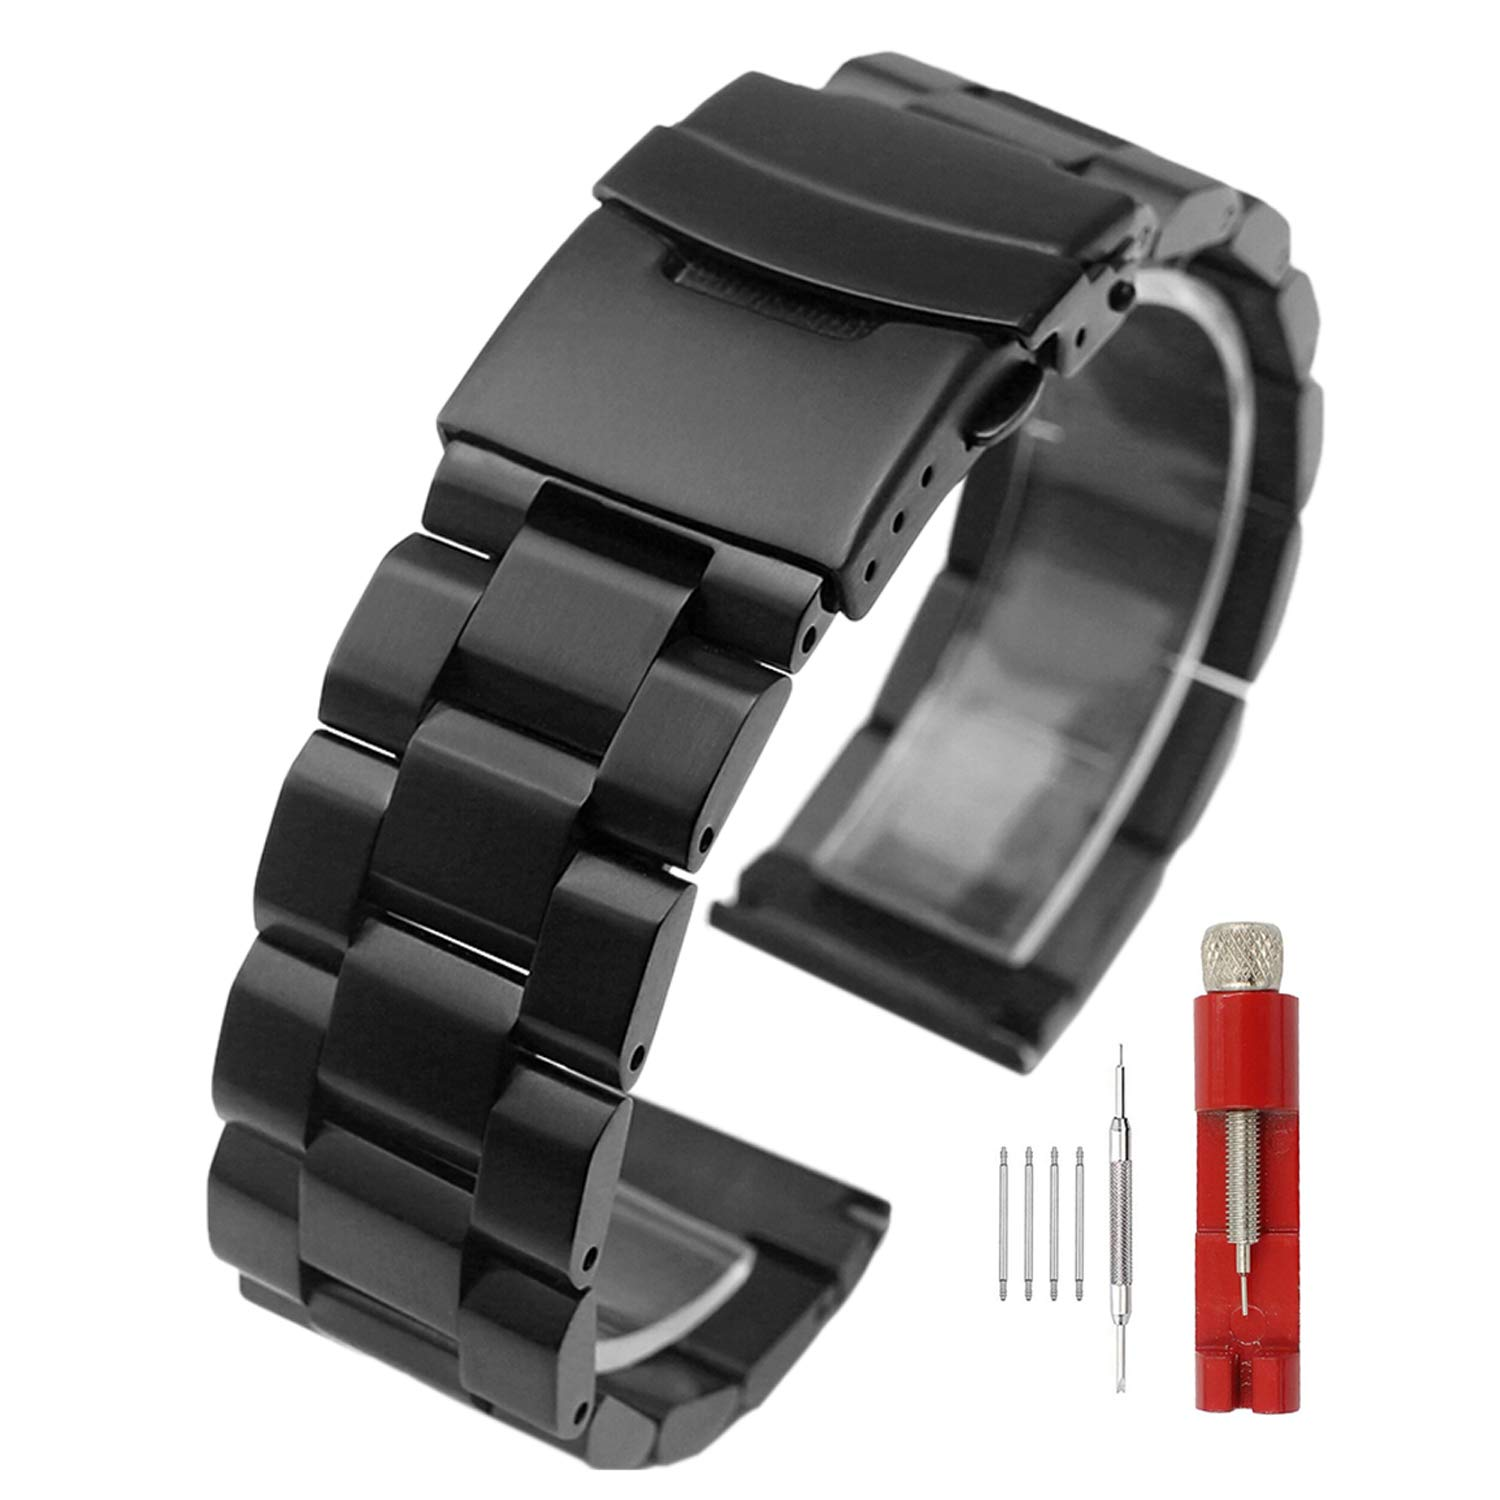 Black Stainless Steel Watch Bands Brushed Finish Watch Strap 18mm/20mm/22mm/24mm Double Buckle Bracelet (20mm) by Hstrap